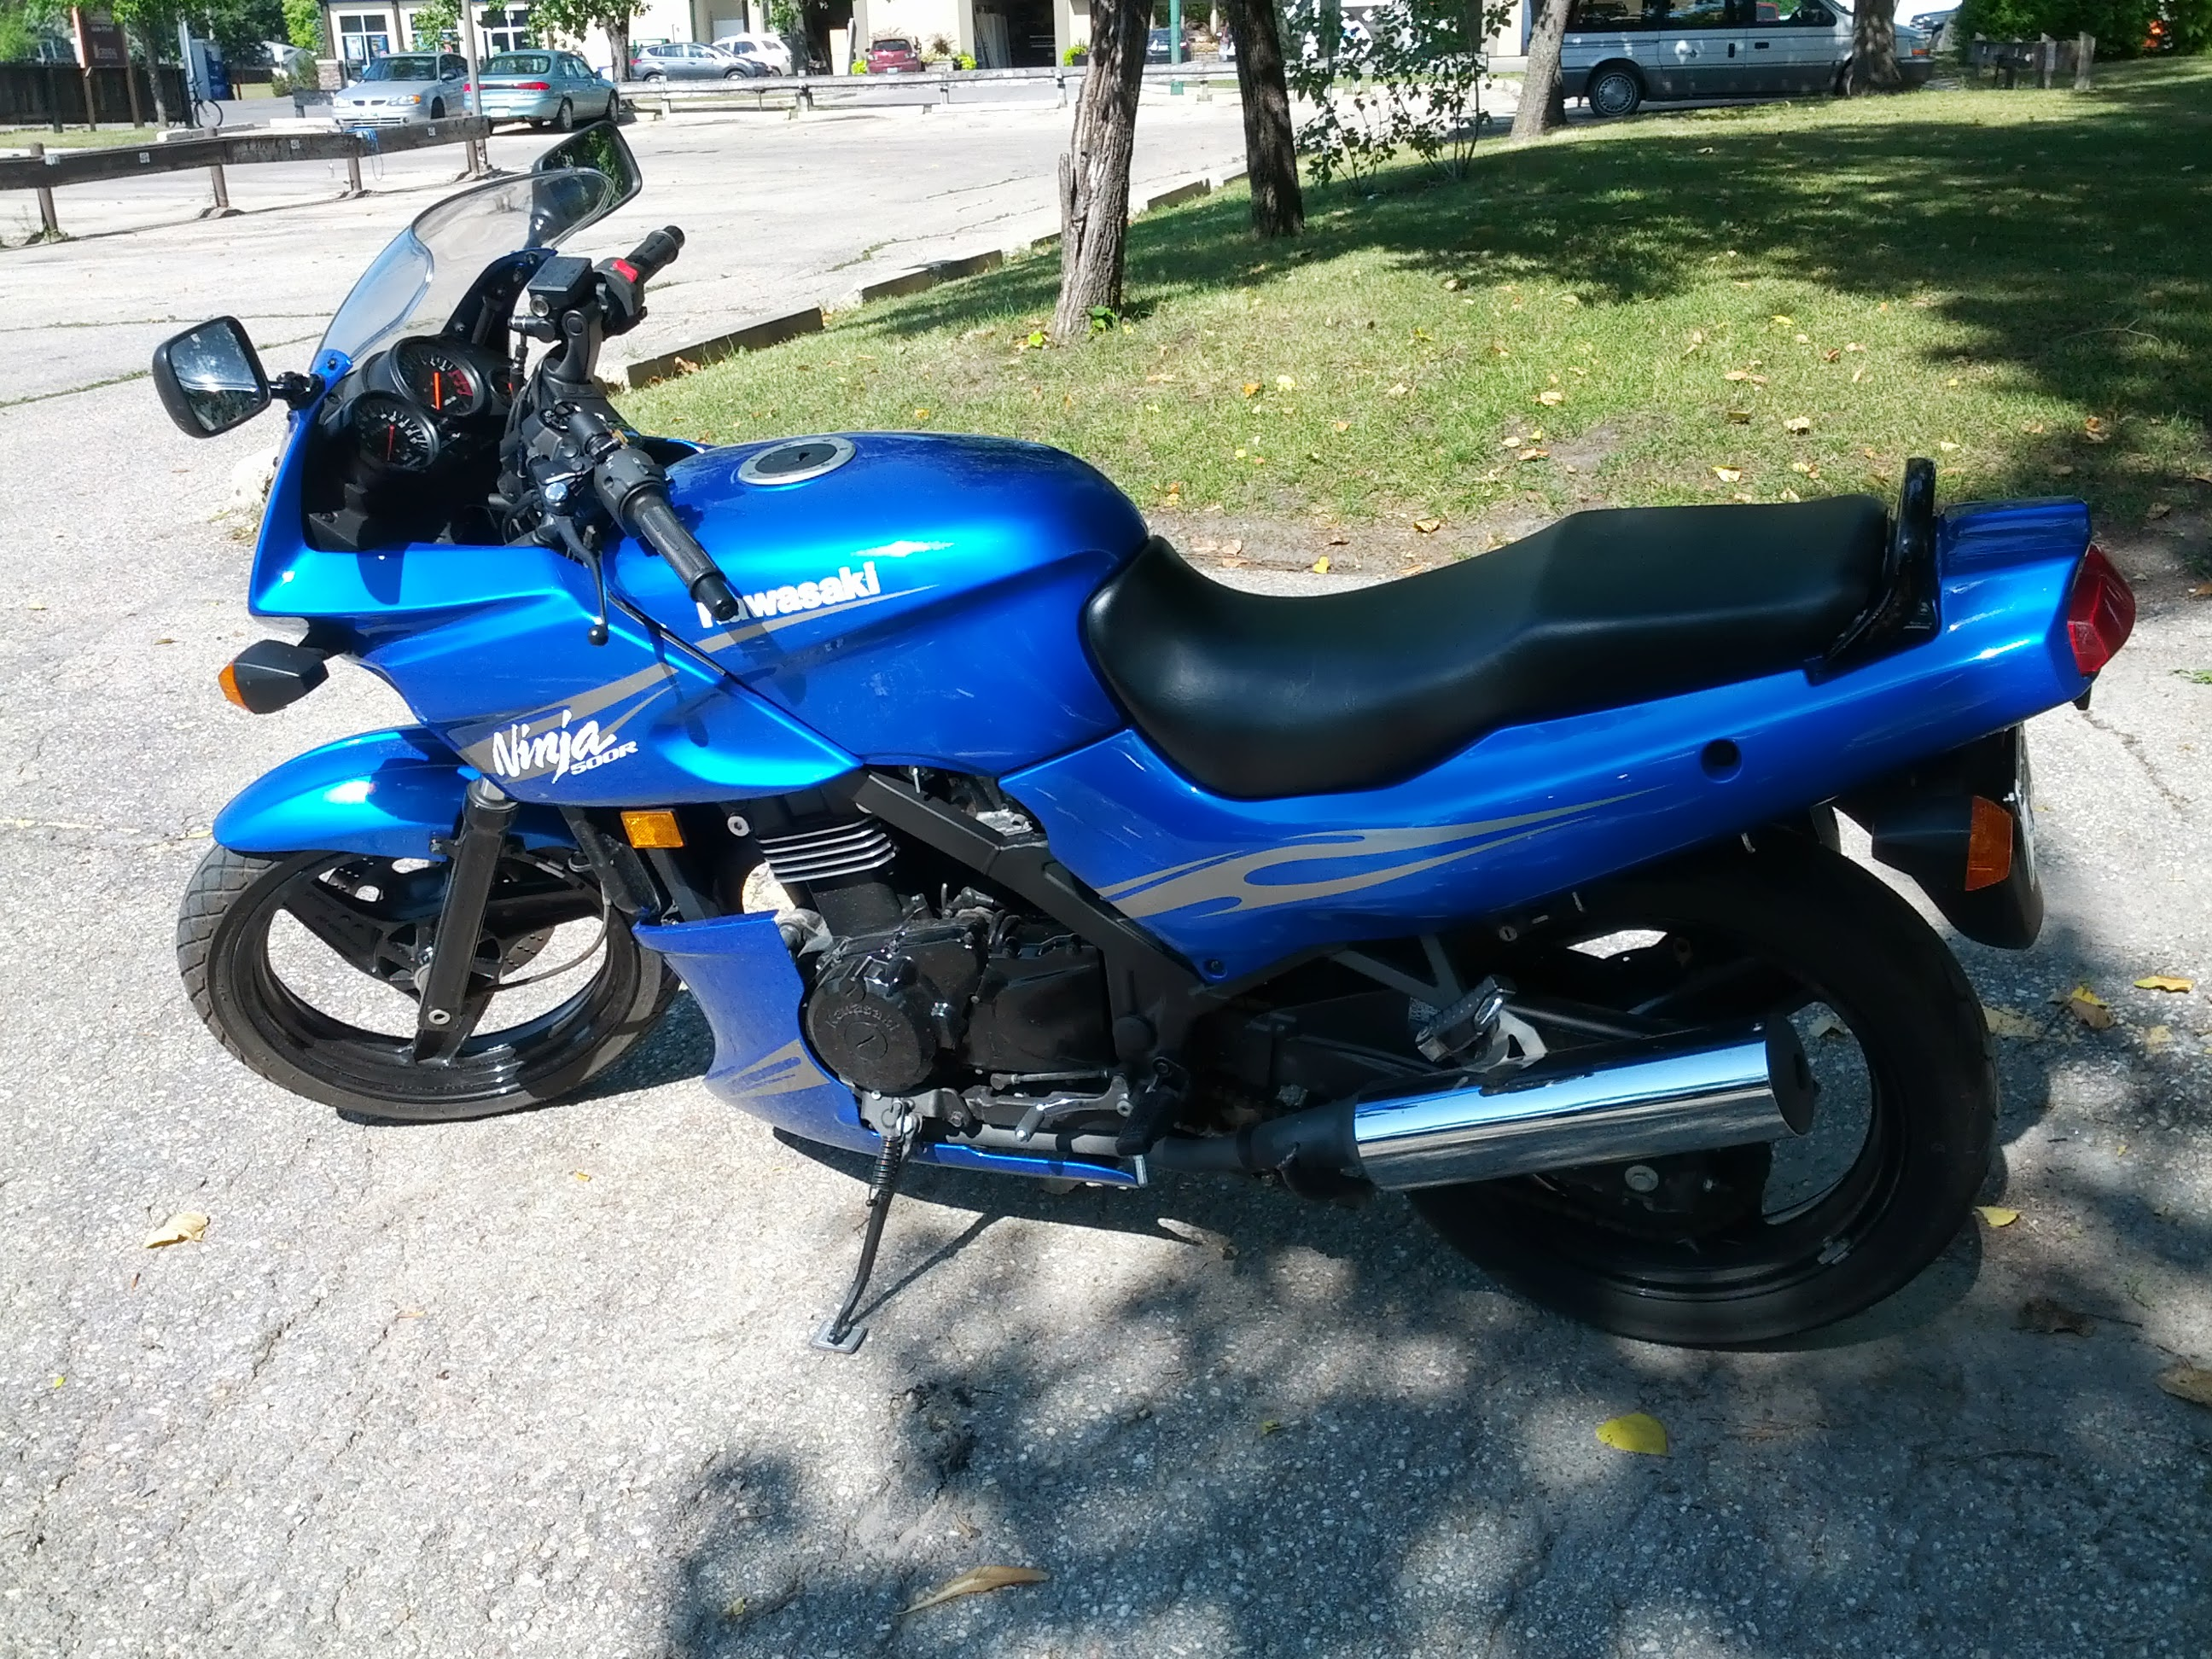 1998 kawasaki gpz 500 s pics specs and information. Black Bedroom Furniture Sets. Home Design Ideas